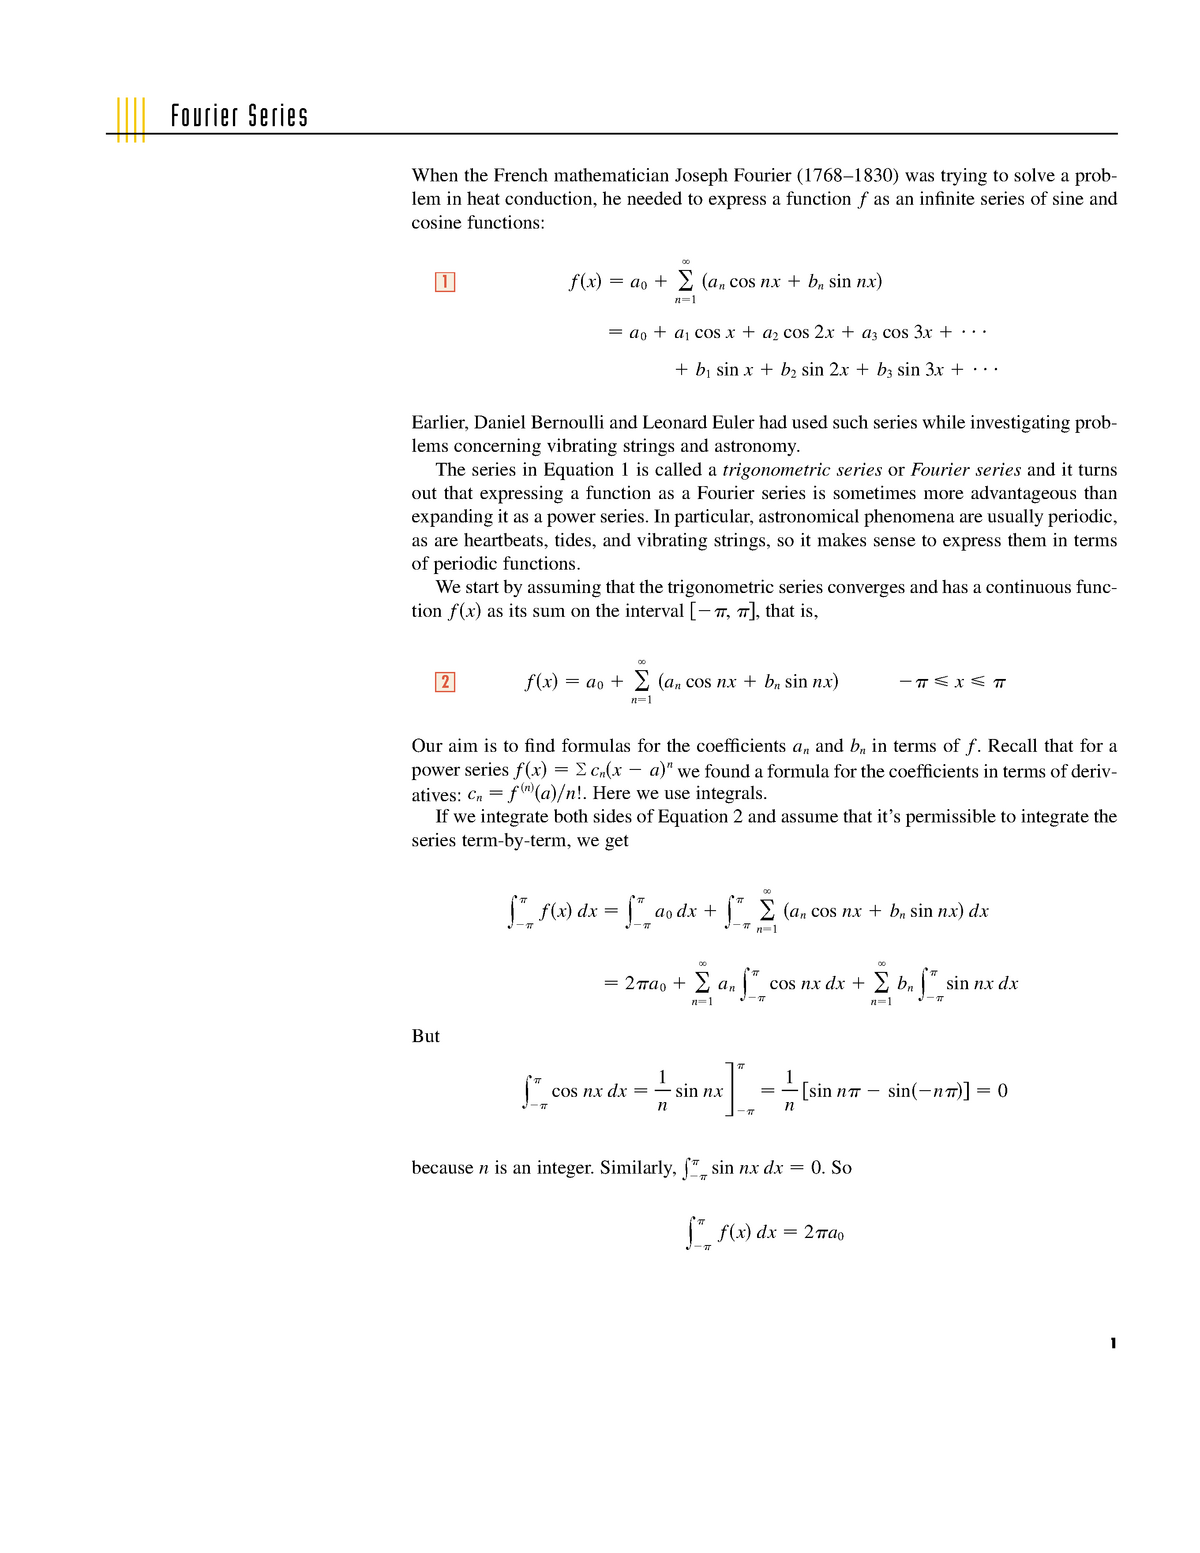 Lecture notes, lecture Fourier Series - MATH 132 - LU - StuDocu